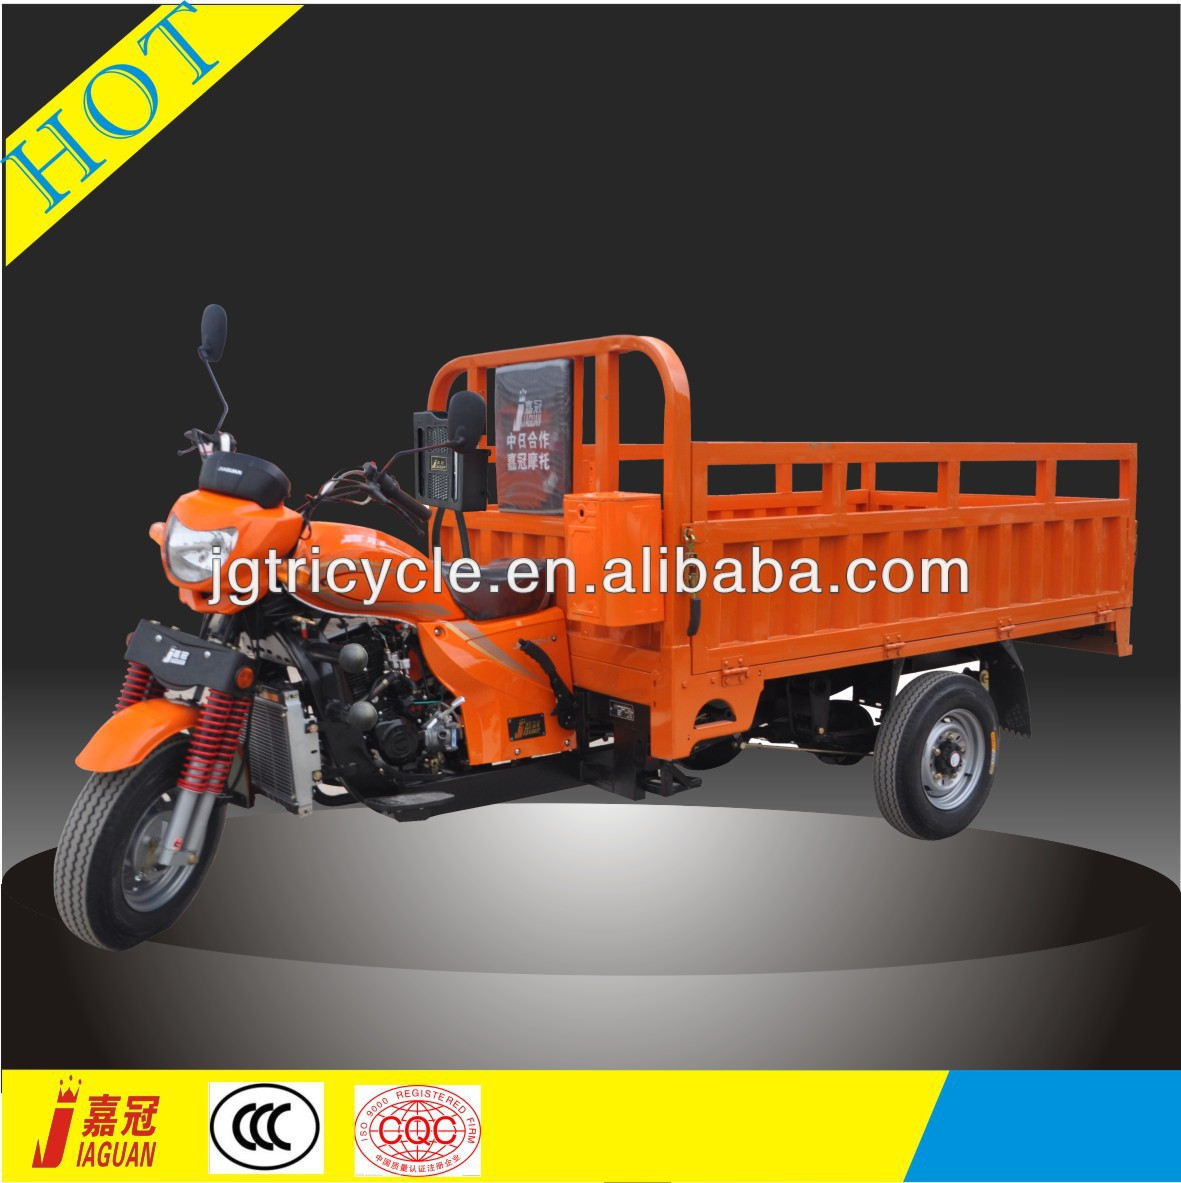 1.1*1.6m Cargo Box Trike chinese 250cc three wheel motorcycle